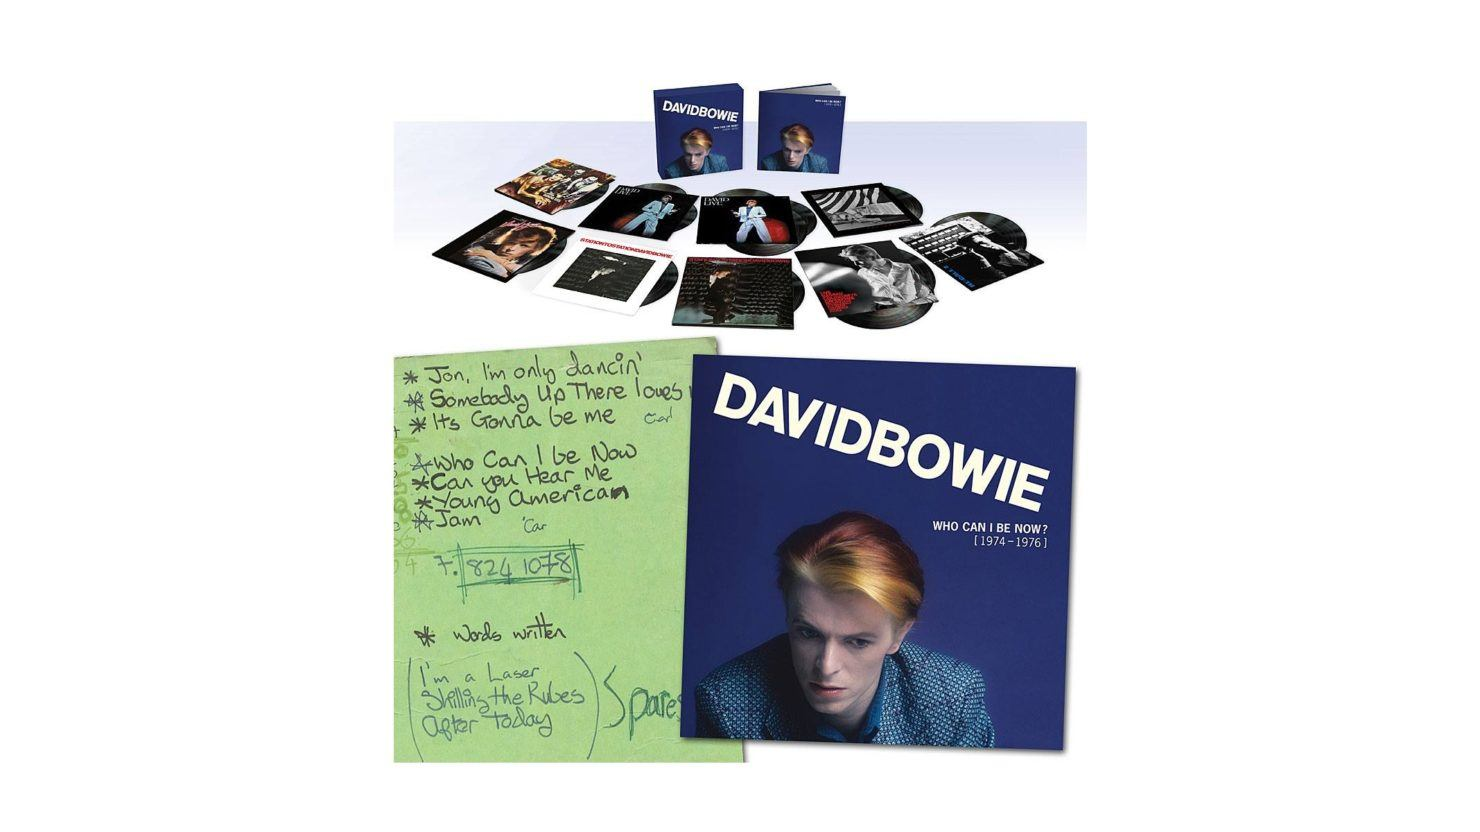 Bowie-Wow-Can-I-Be-Now-Crop-1480x832